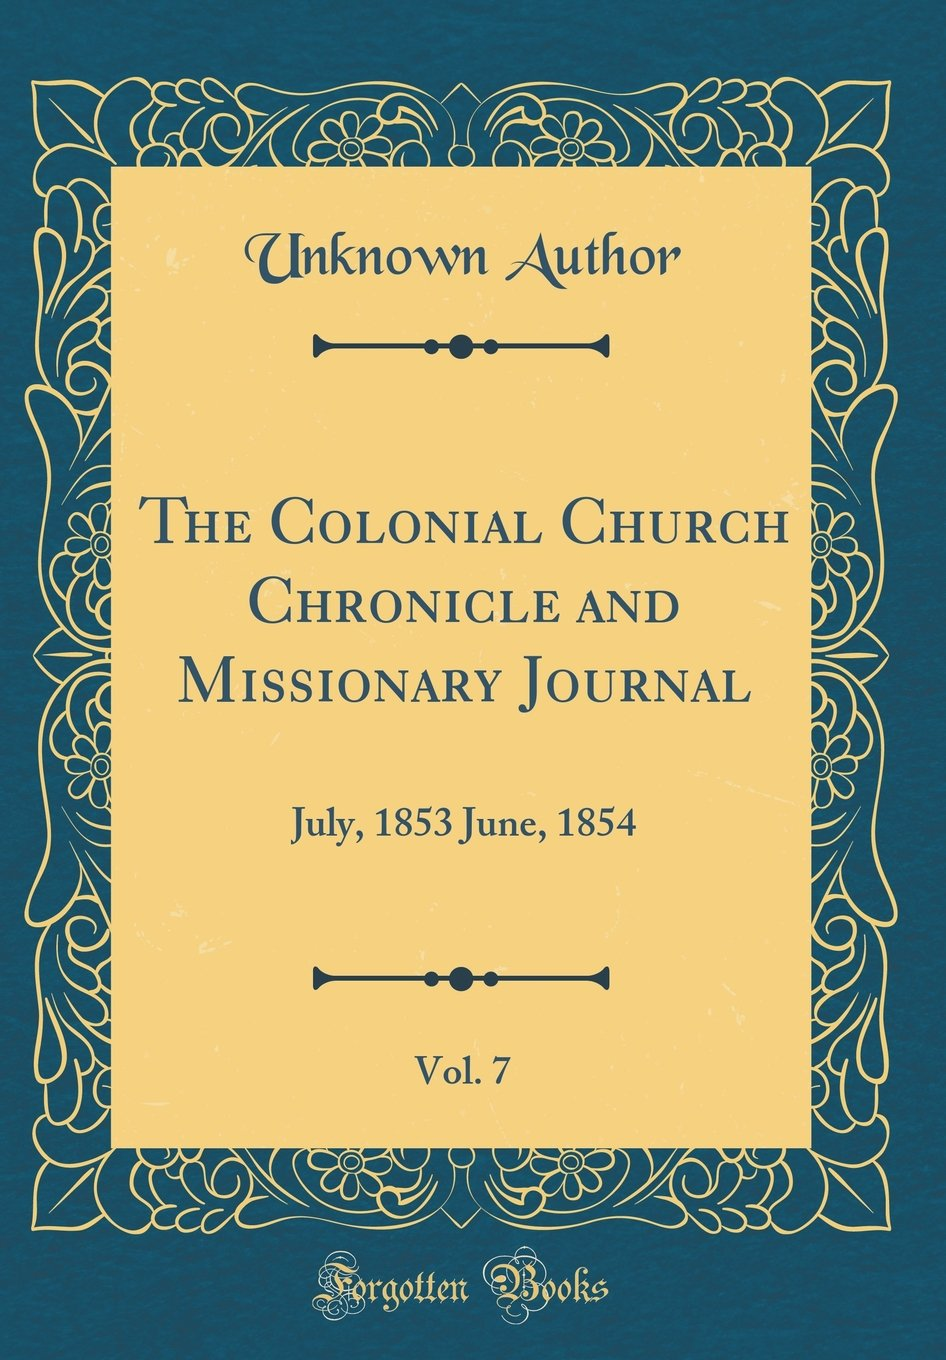 The Colonial Church Chronicle and Missionary Journal, Vol. 7: July, 1853 June, 1854 (Classic Reprint) pdf